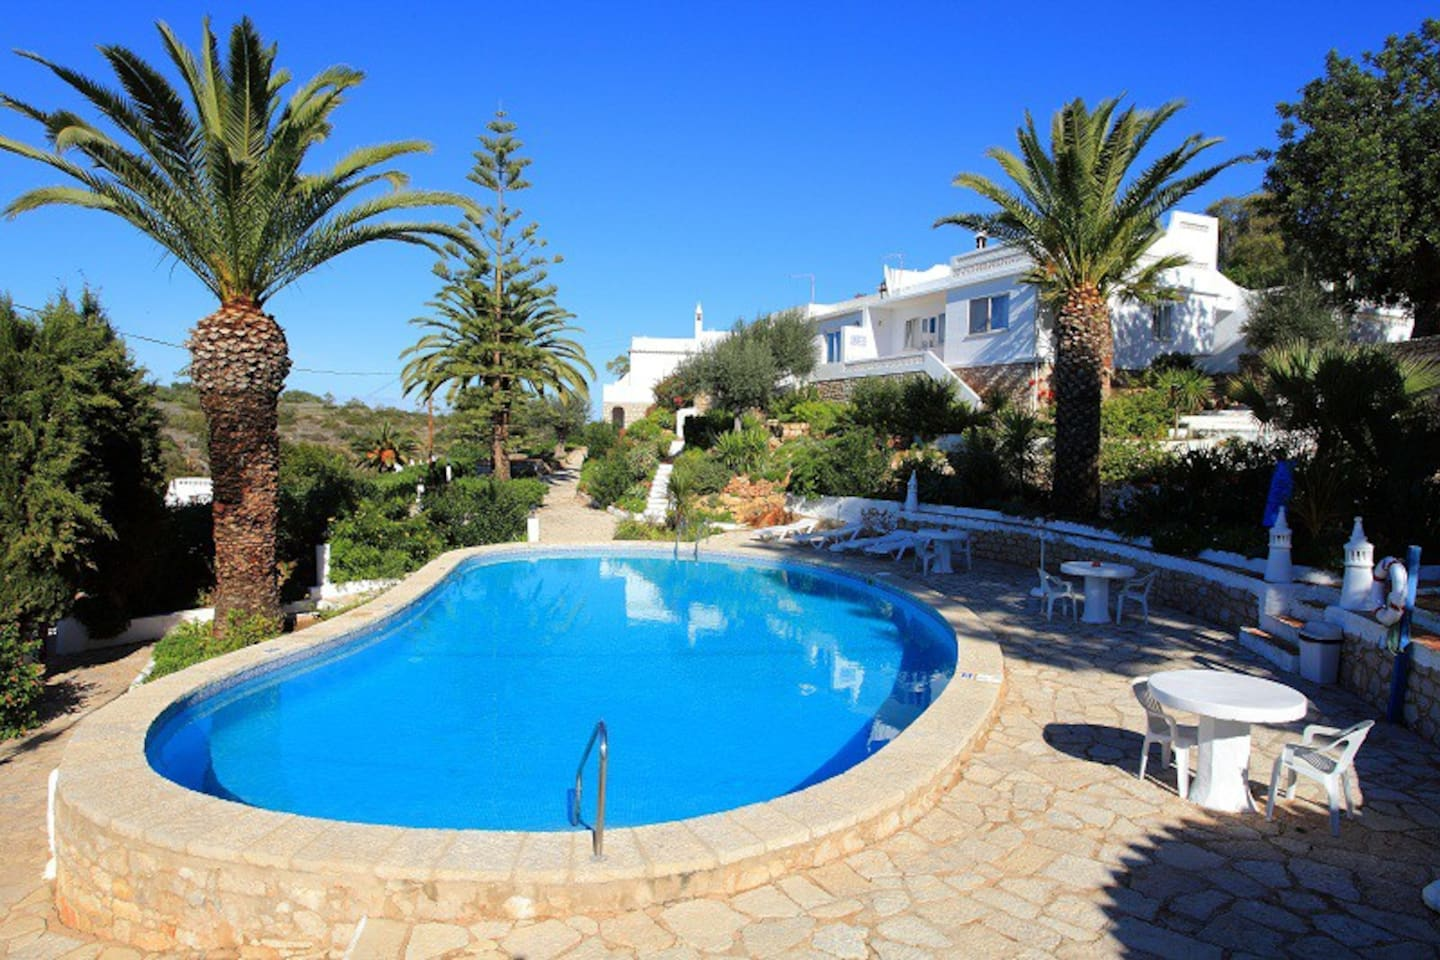 The top pool is the quieter of the two Quinta pools